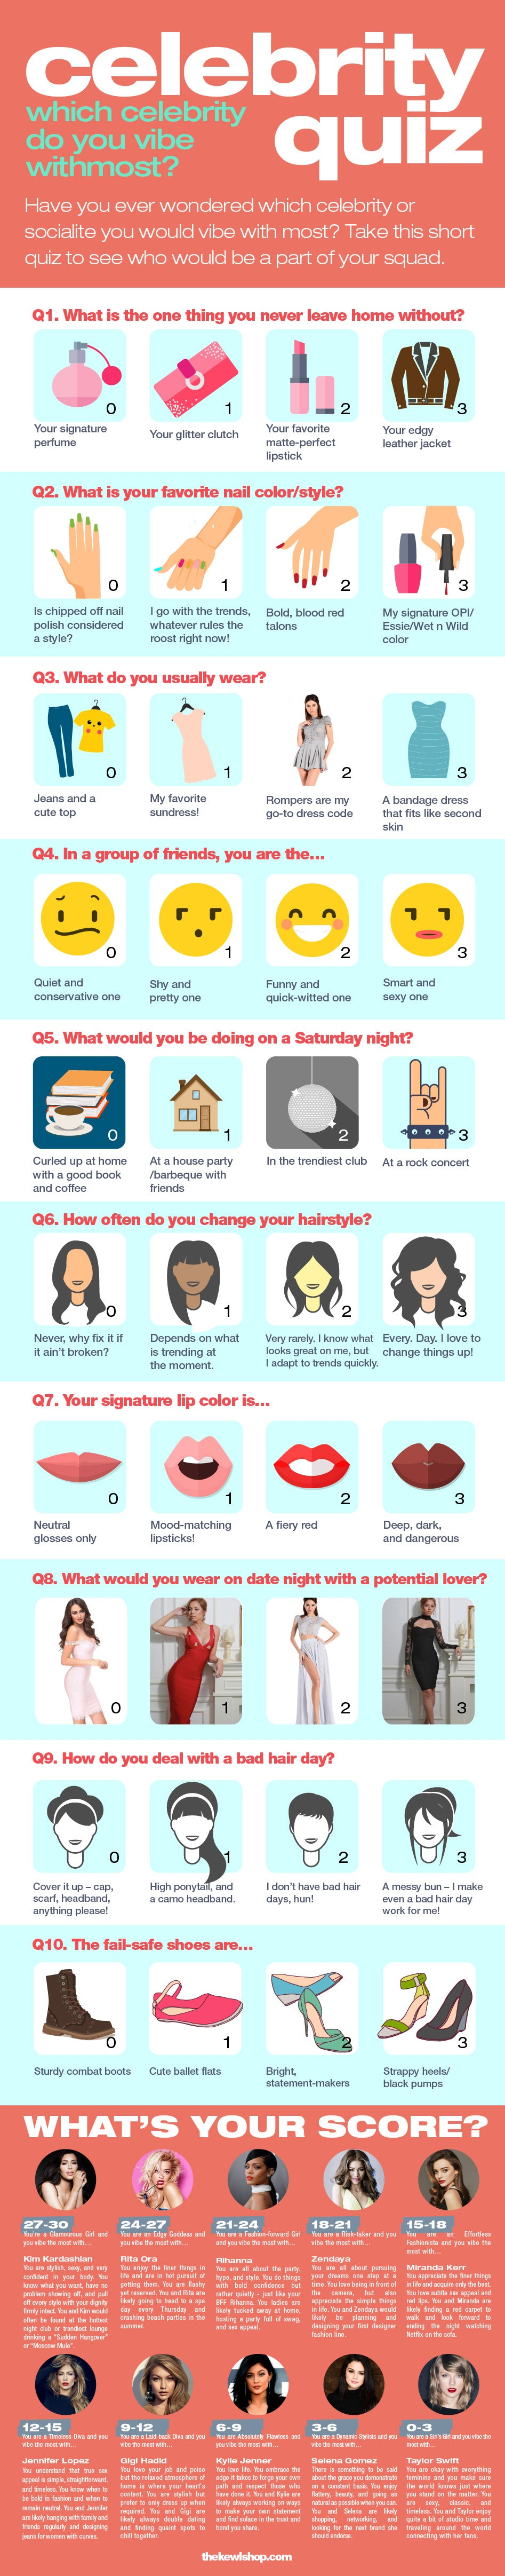 which celebrity quiz infographic